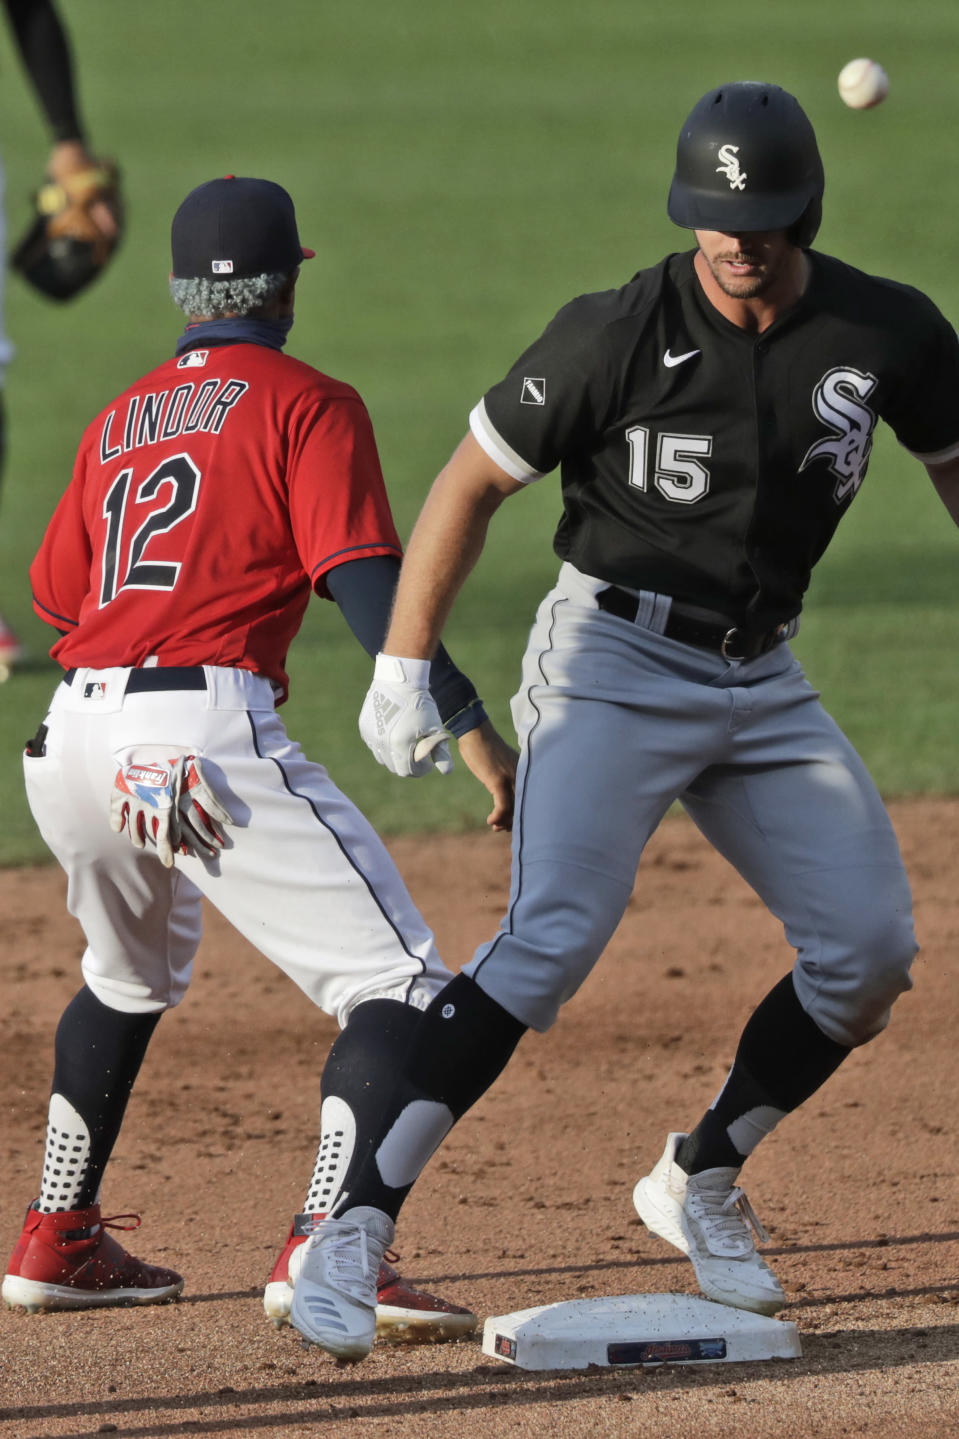 Chicago White Sox's Adam Engel (15) is safe at second base on a double as Cleveland Indians' Francisco Lindor (12) waits for the ball in the sixth inning in a baseball game, Wednesday, July 29, 2020, in Cleveland. (AP Photo/Tony Dejak)